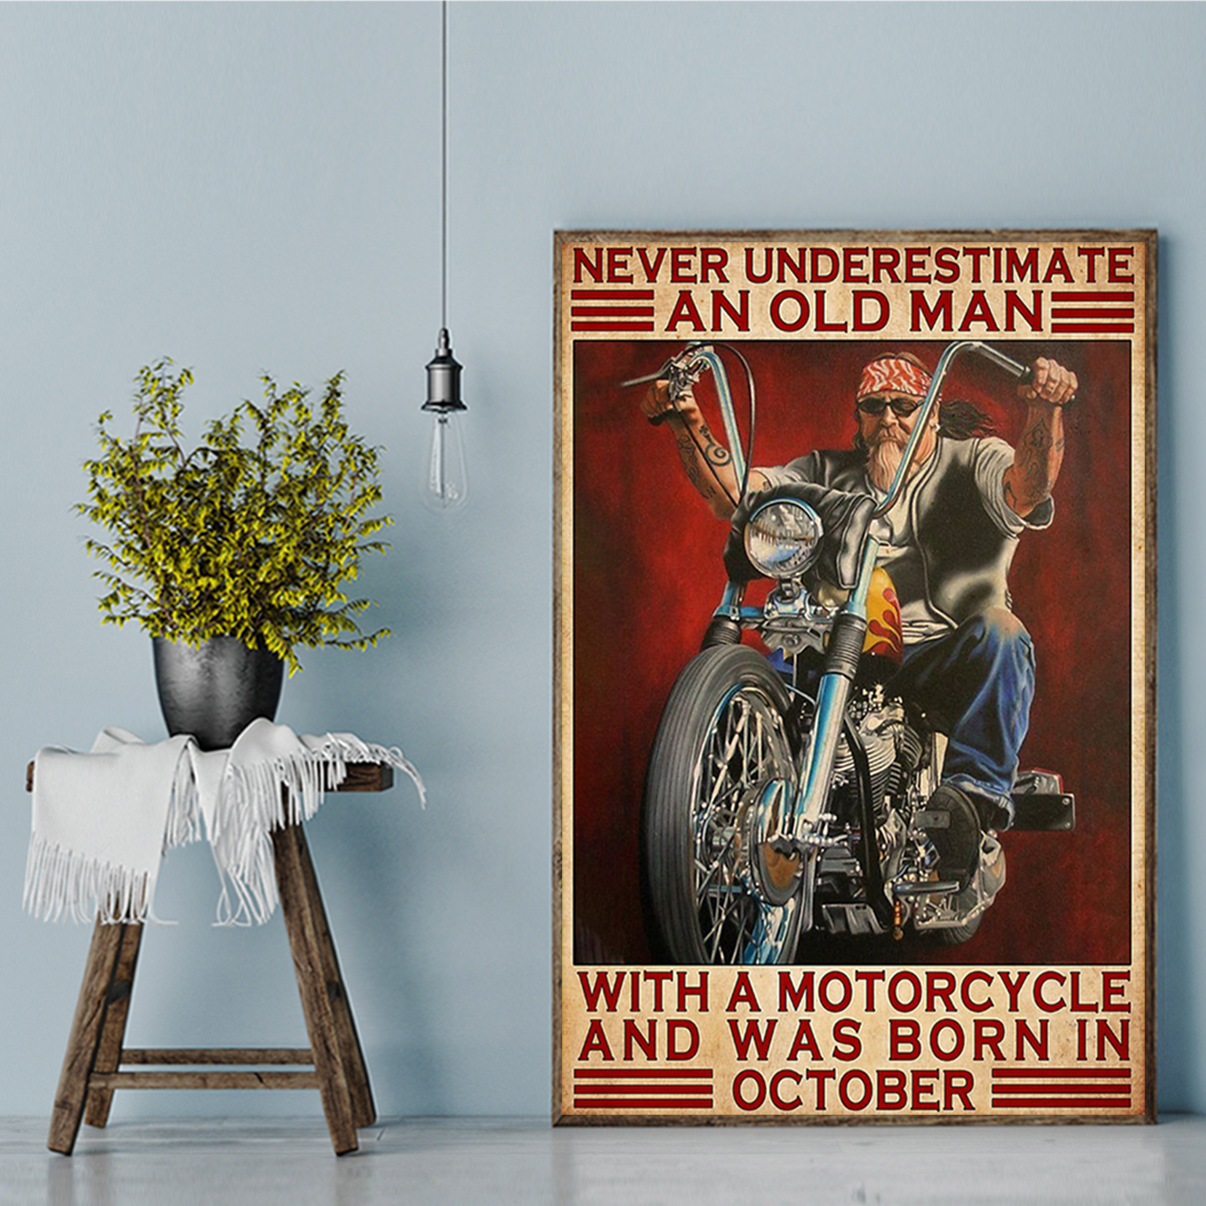 Never underestimate an old man with a motorcycle and was born in october poster A1